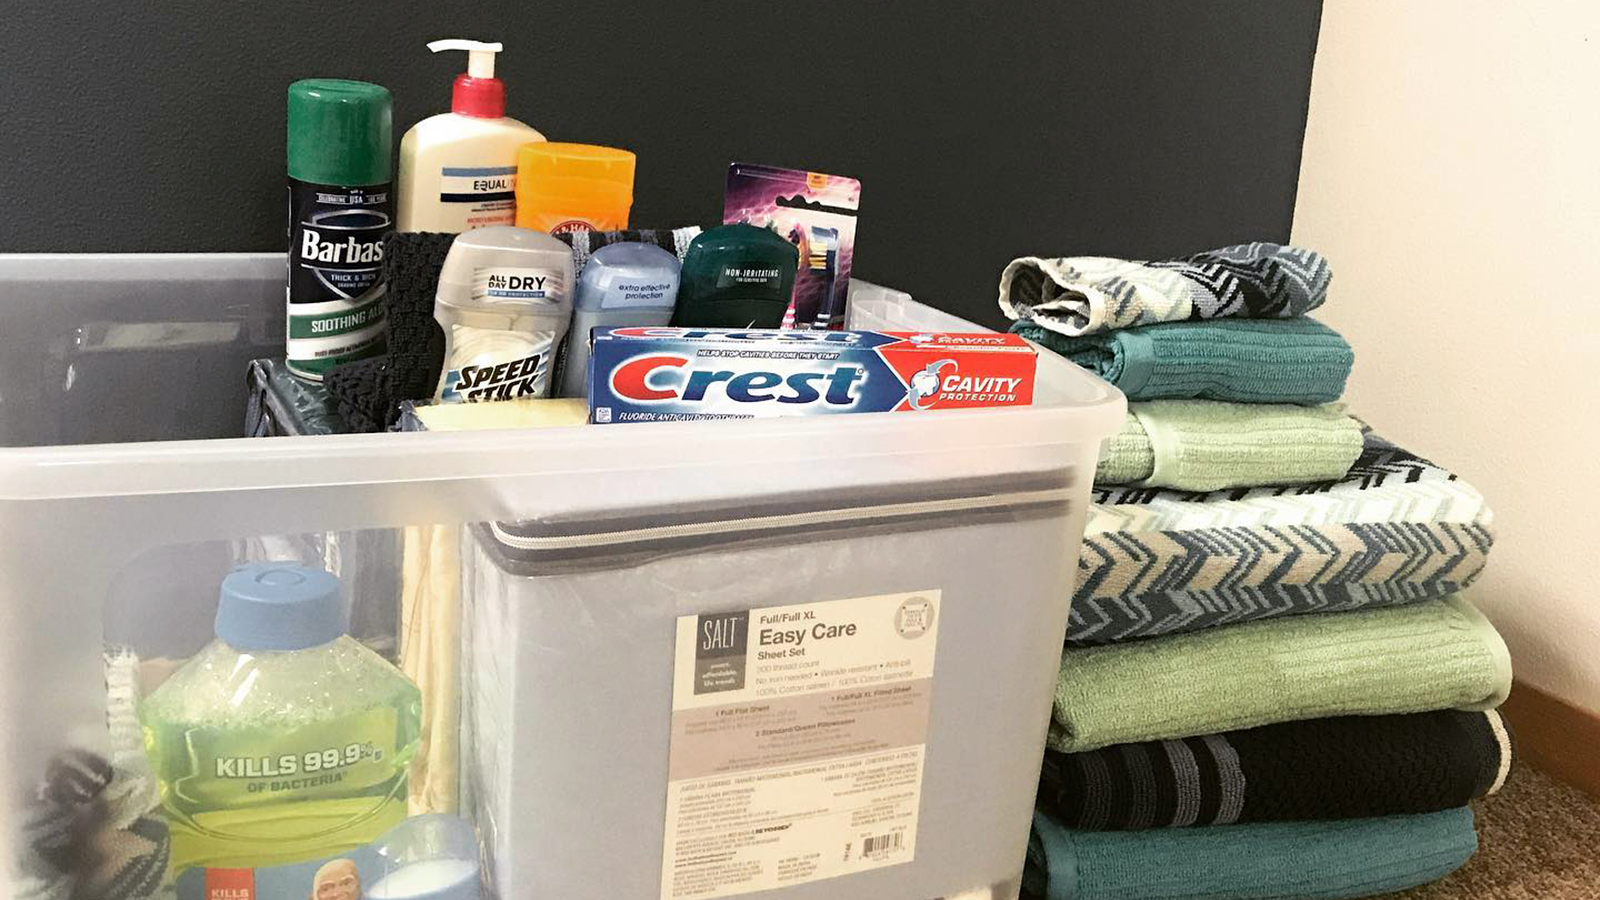 Stack of towels and container with sheets, personal care and cleaning products